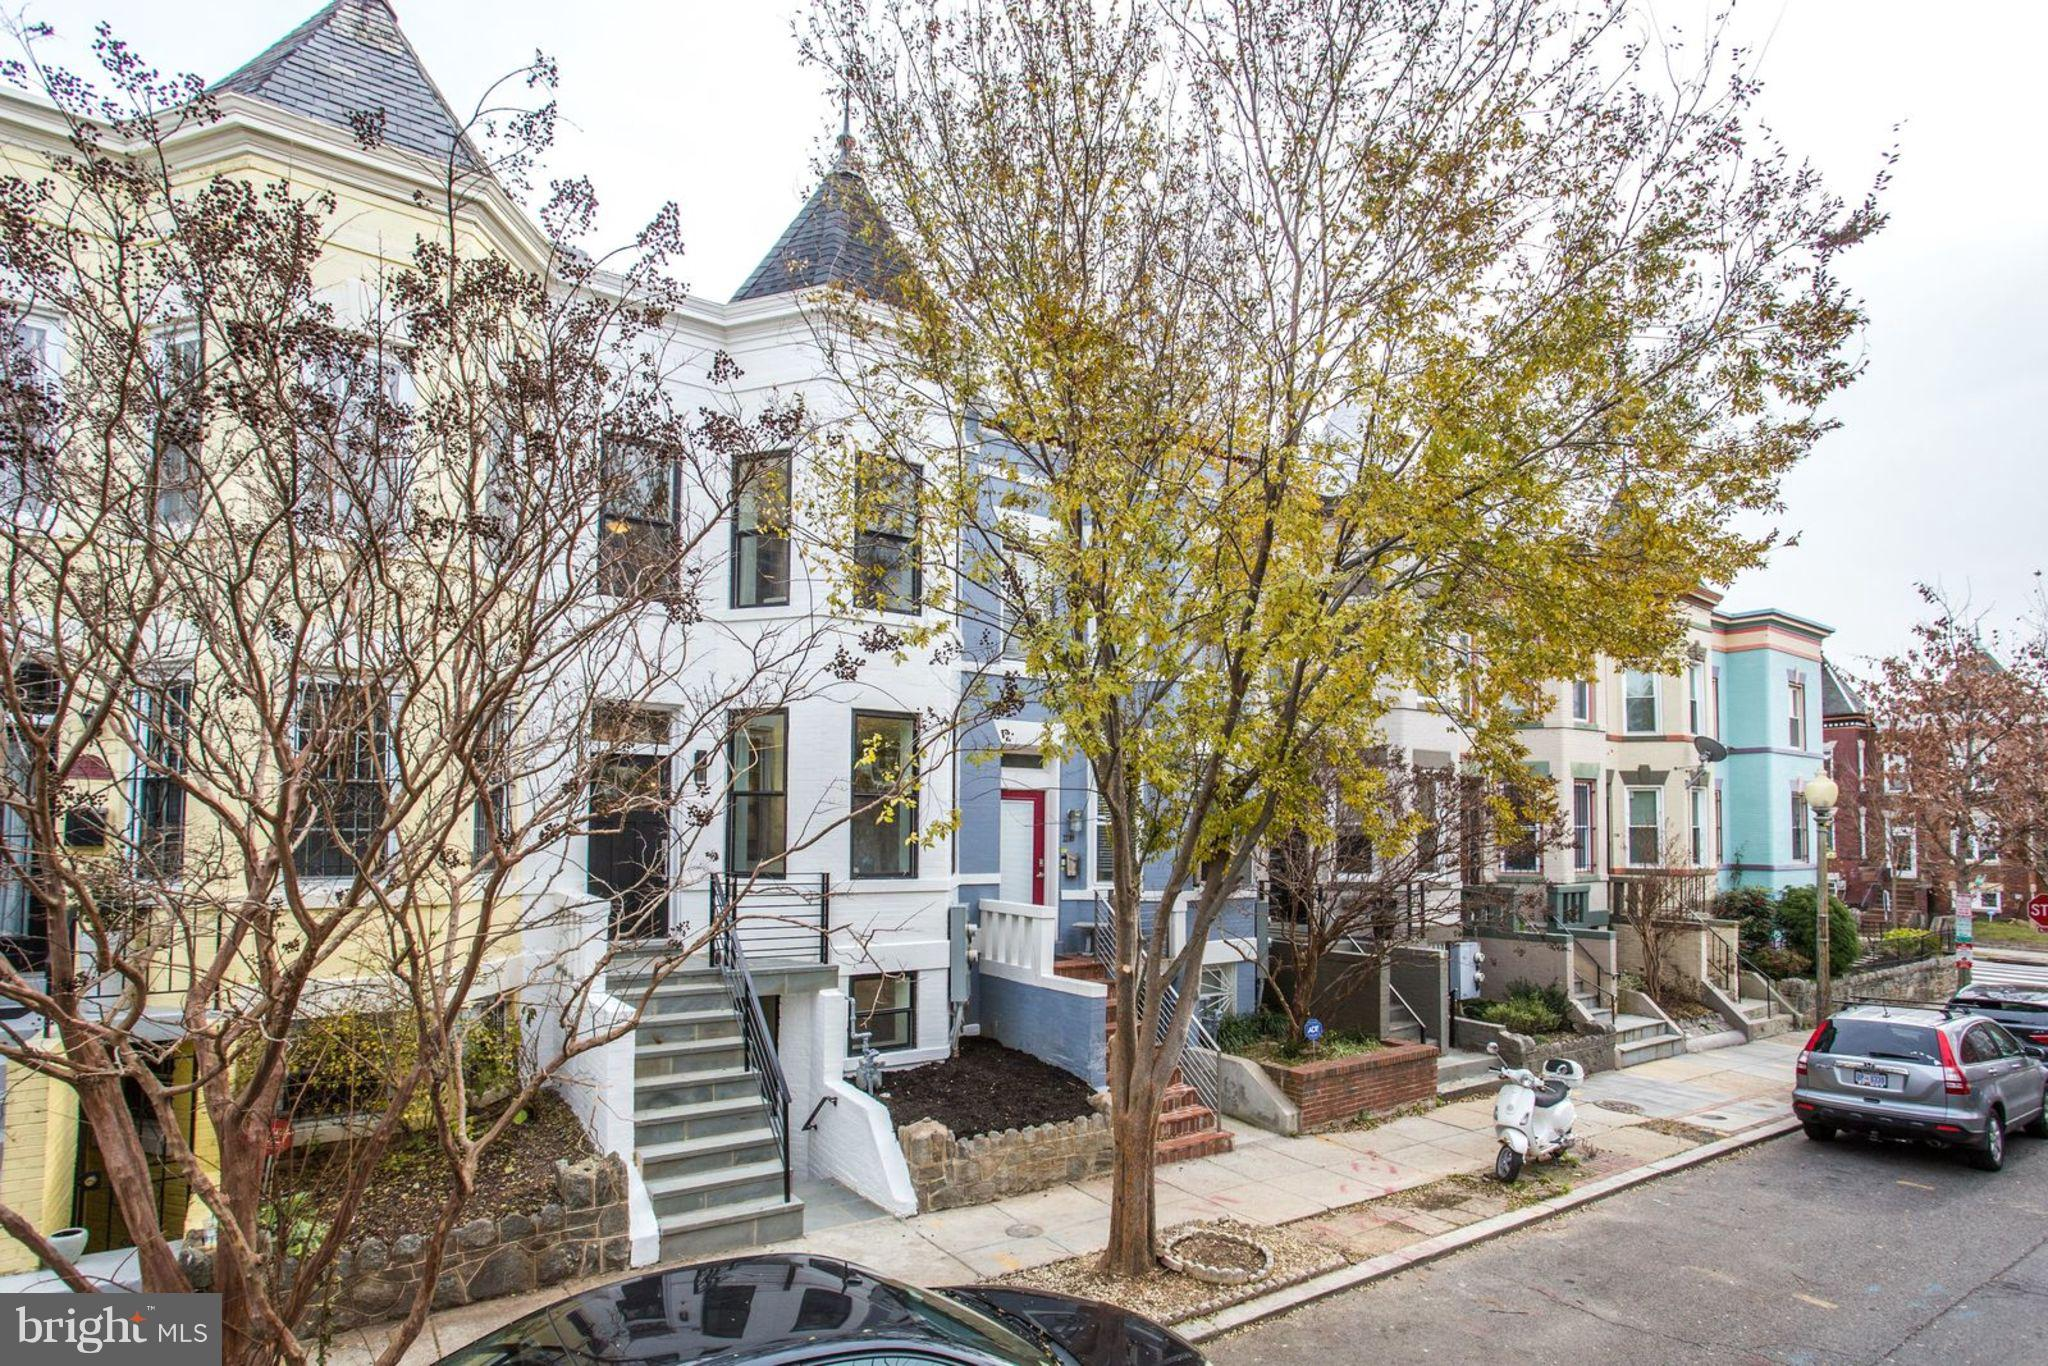 2211 FLAGLER PLACE NW, Washington, DC 20001